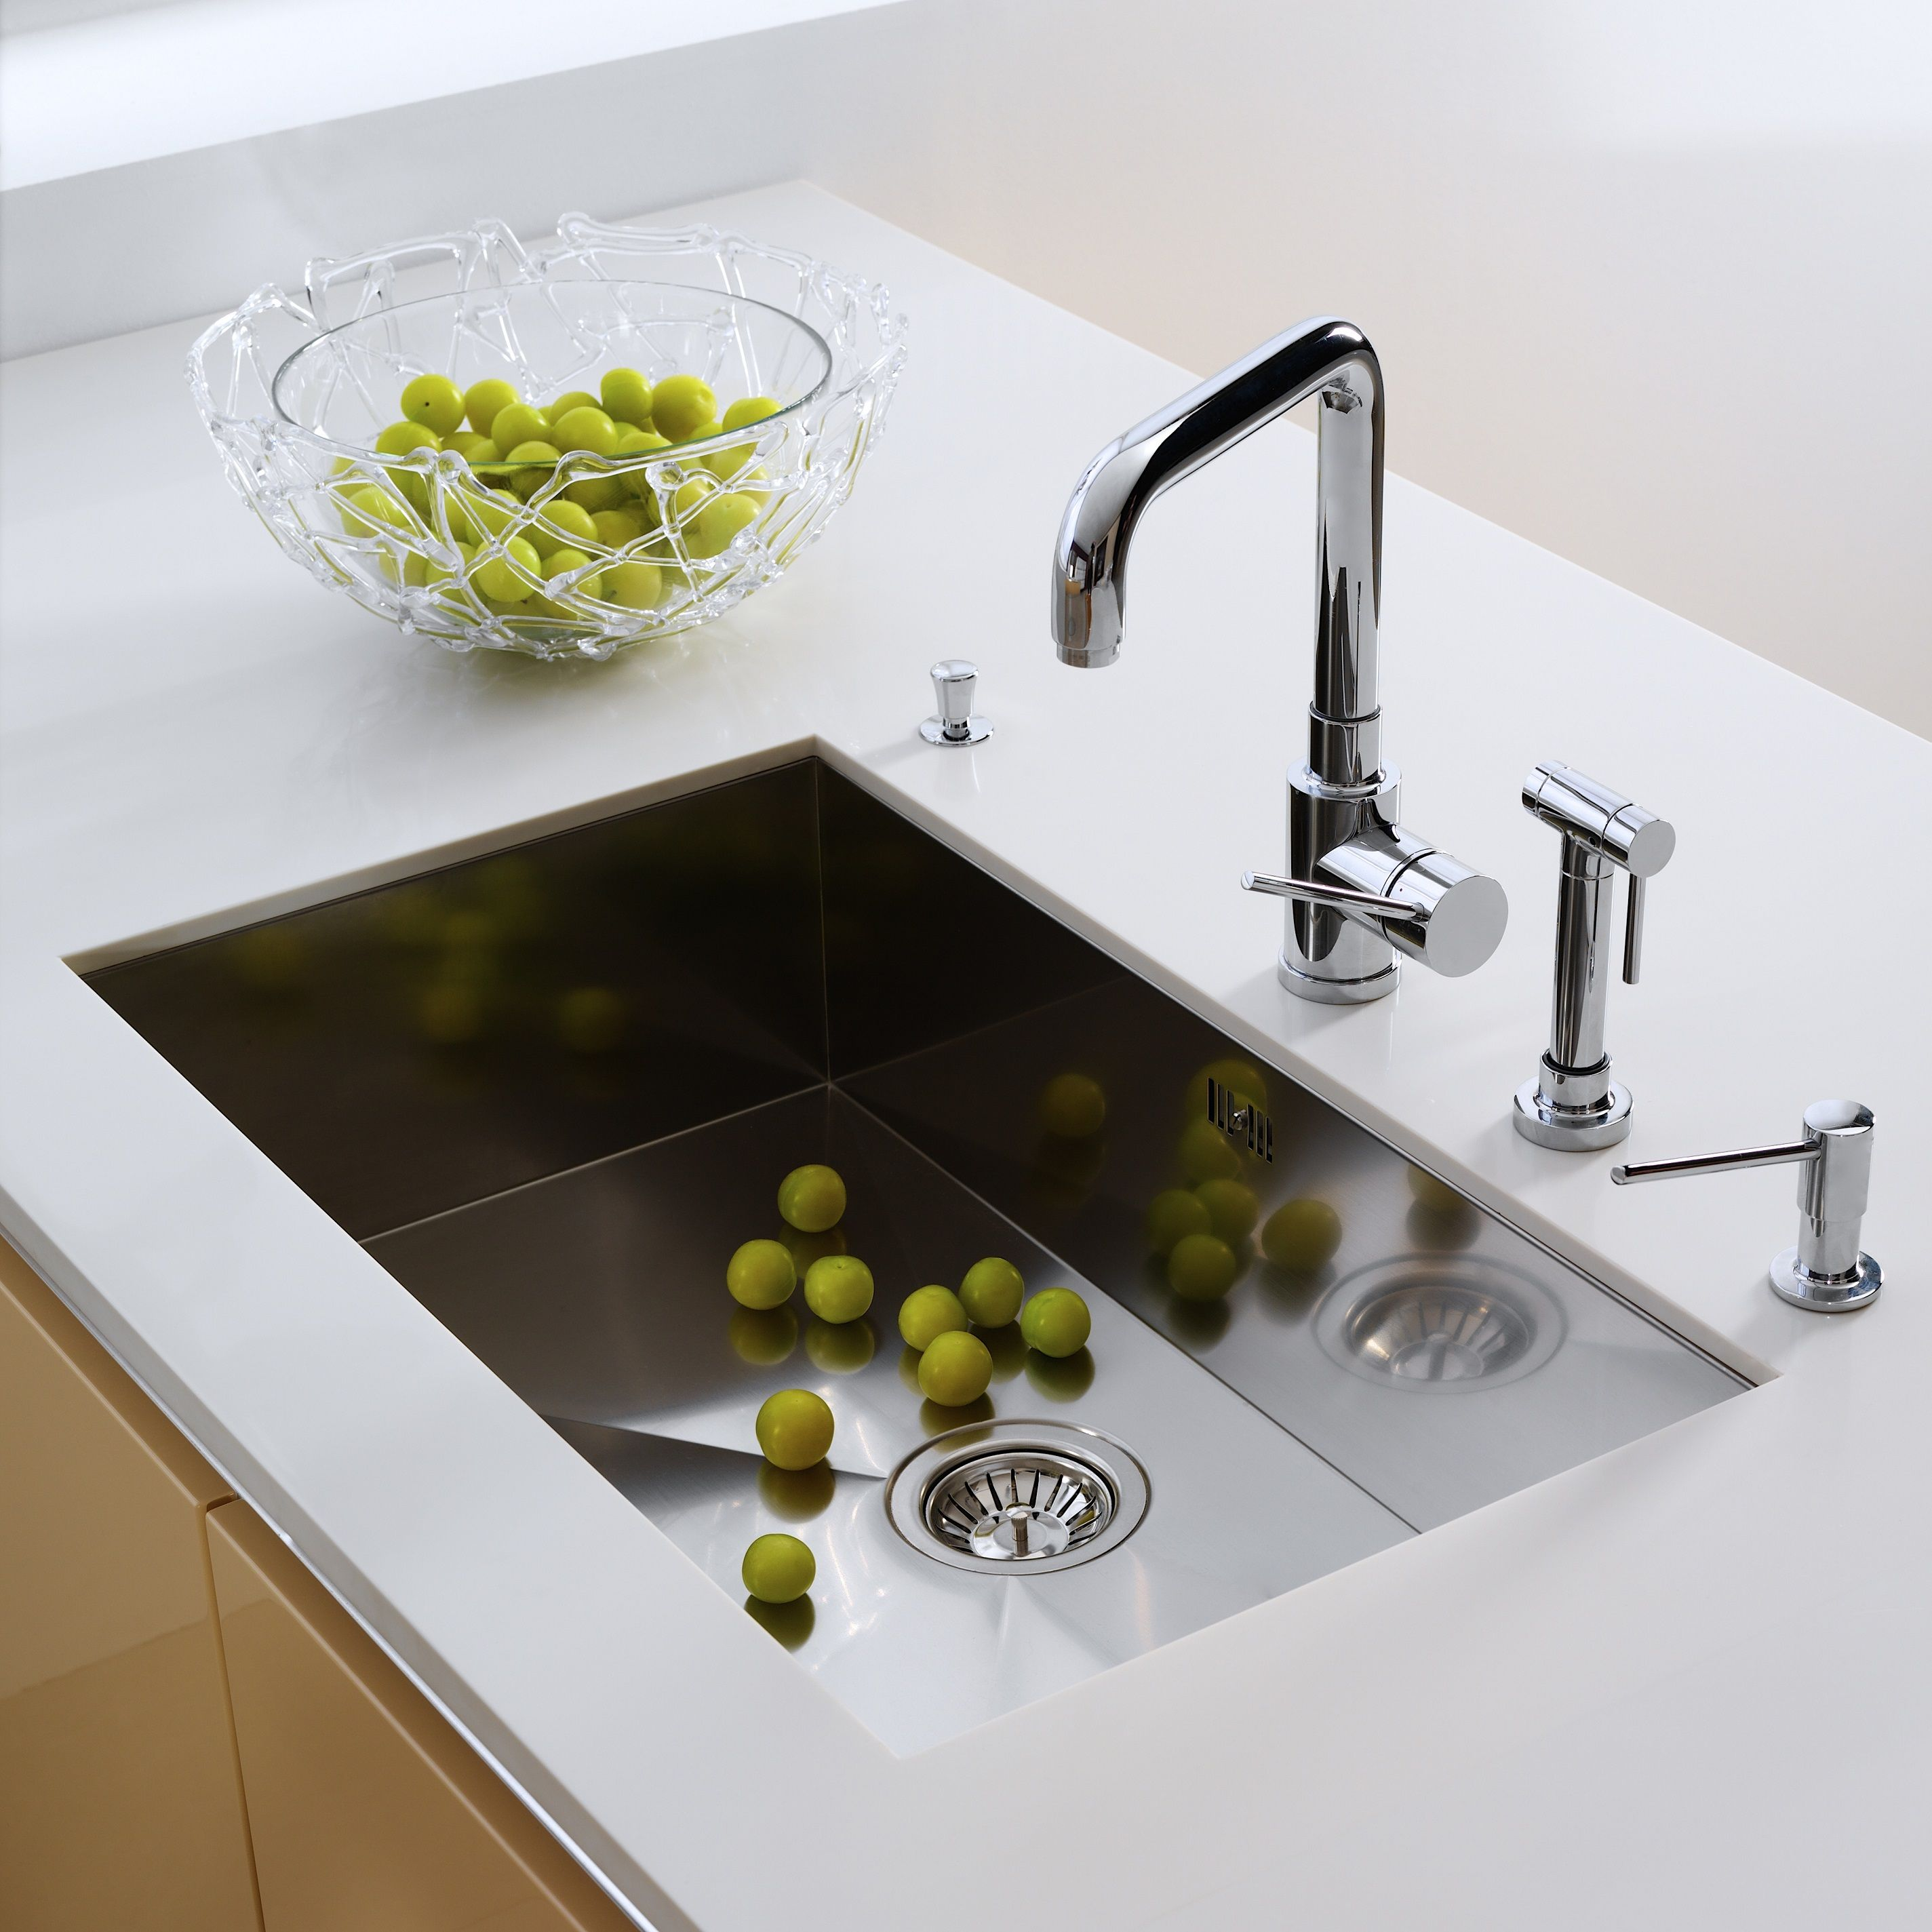 Large stainless kitchen sink